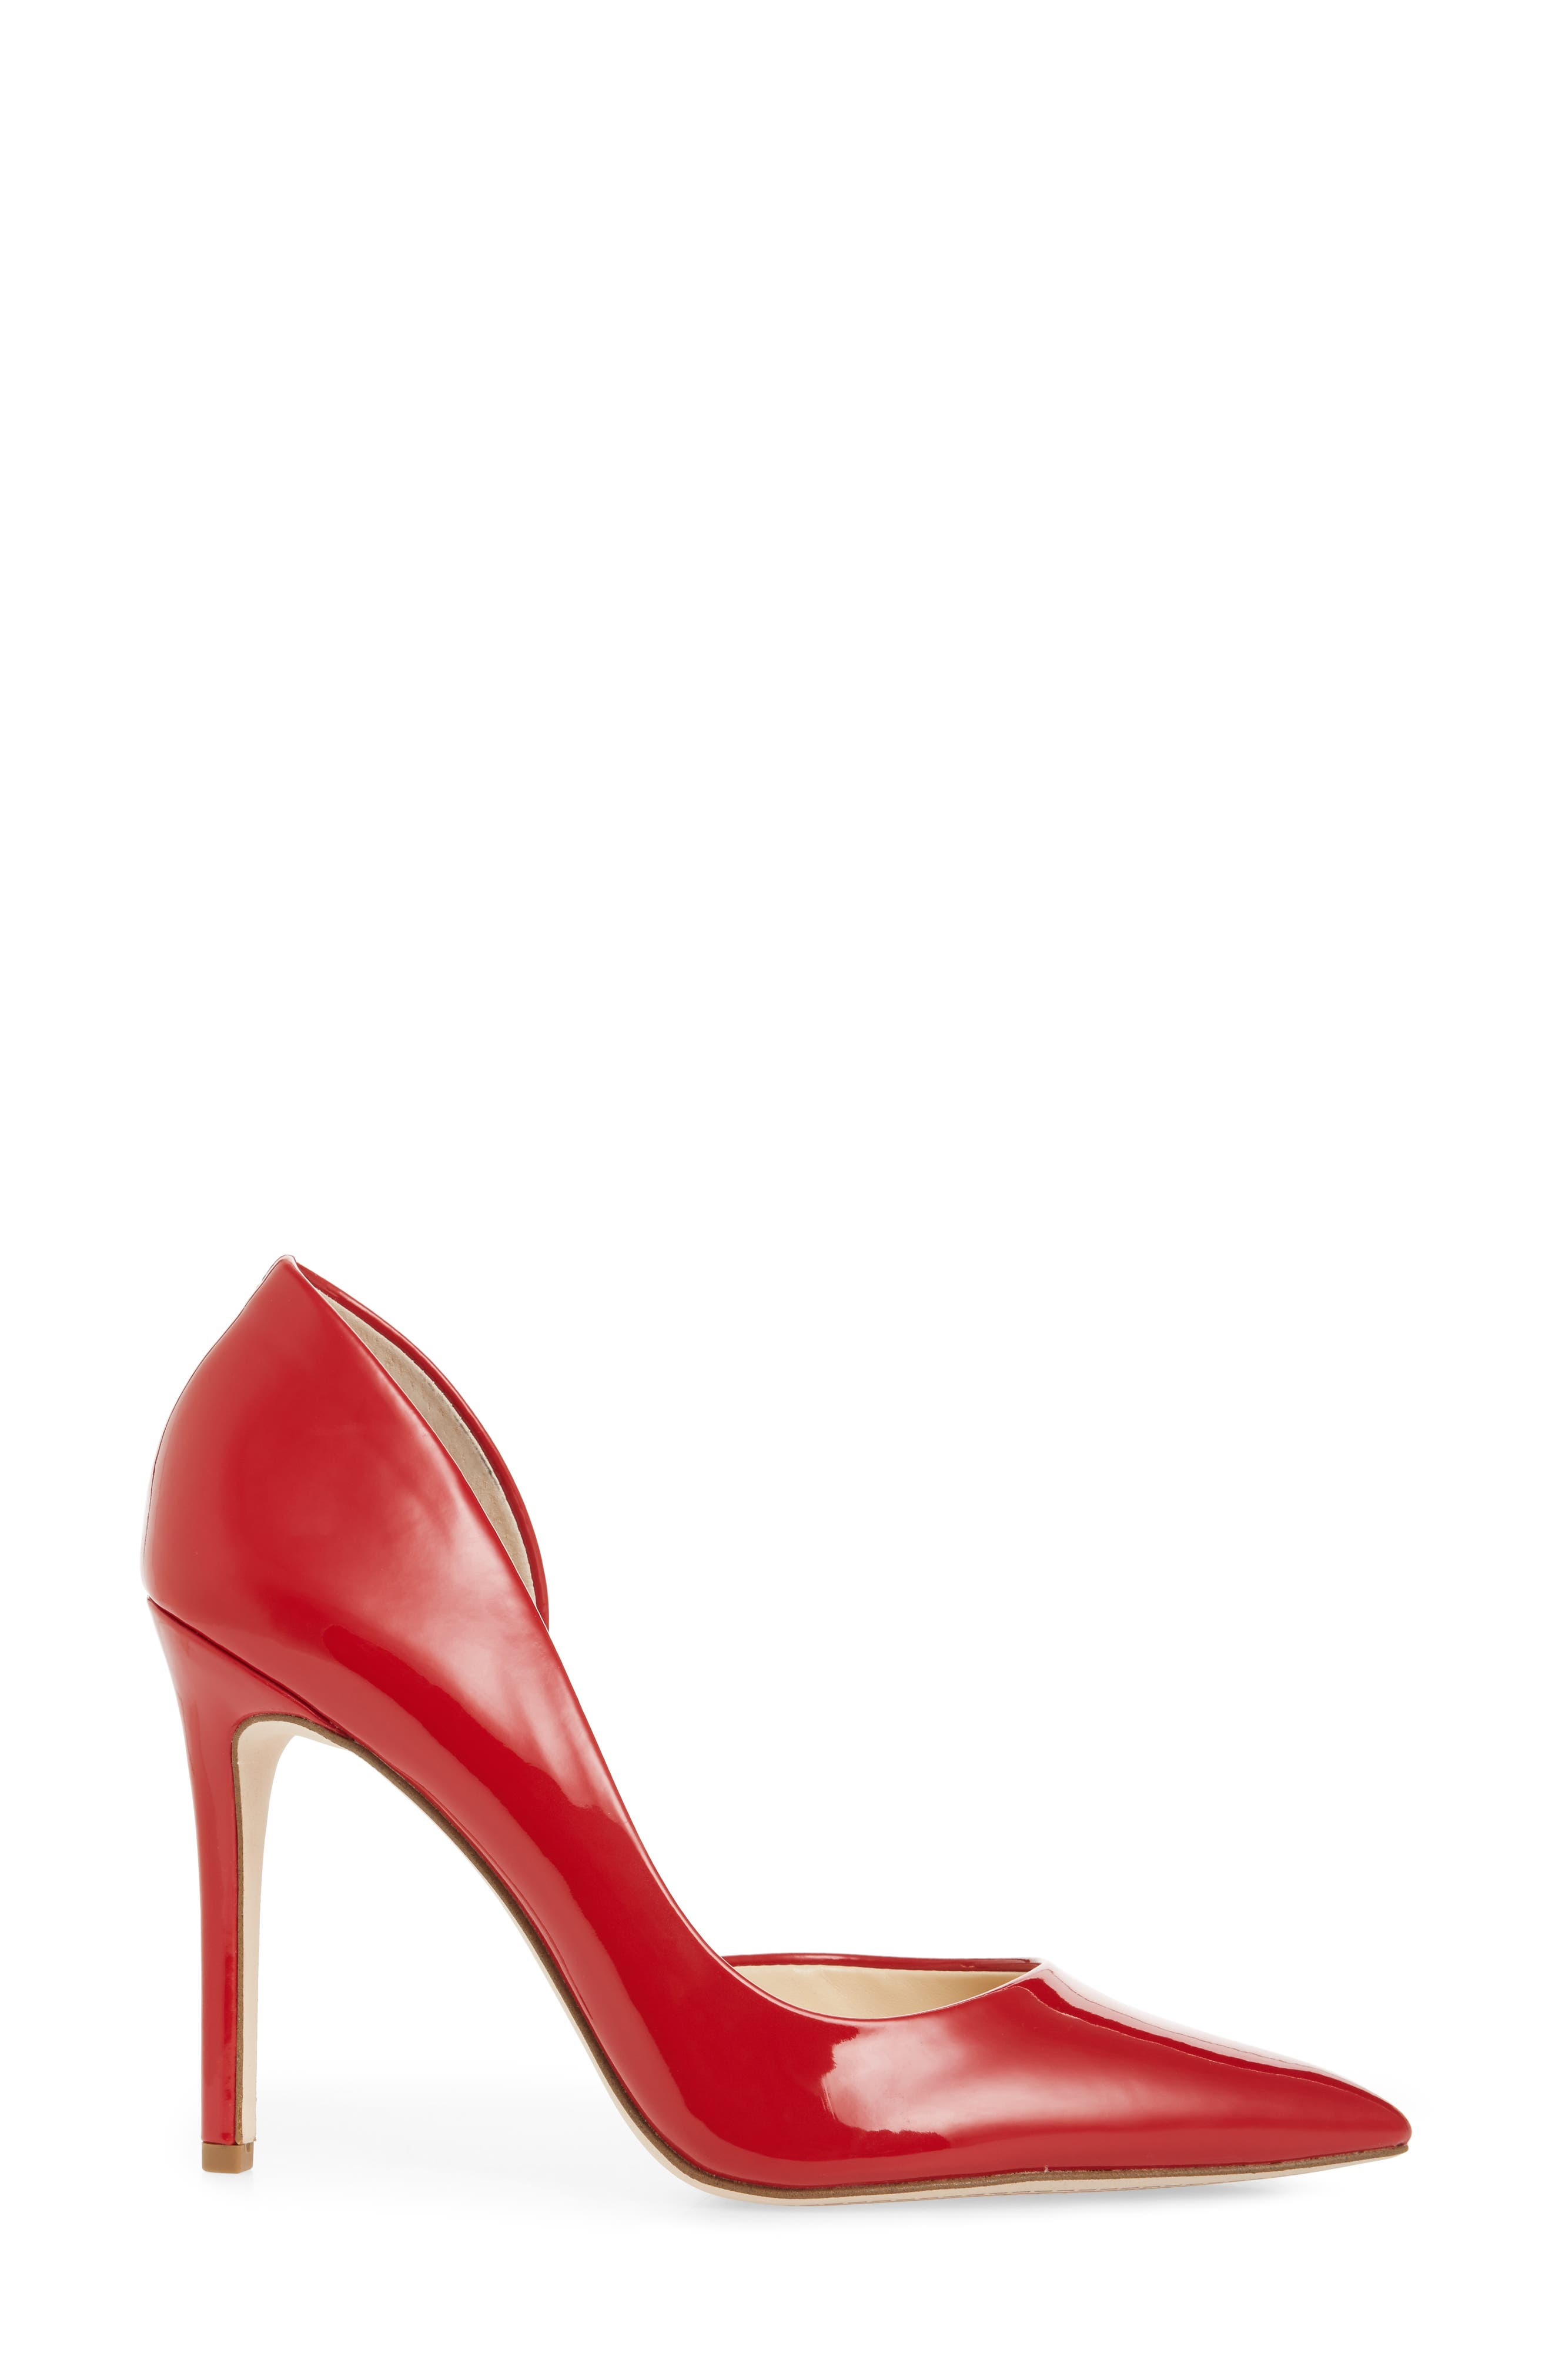 Pheona Pump,                             Alternate thumbnail 3, color,                             Red Muse